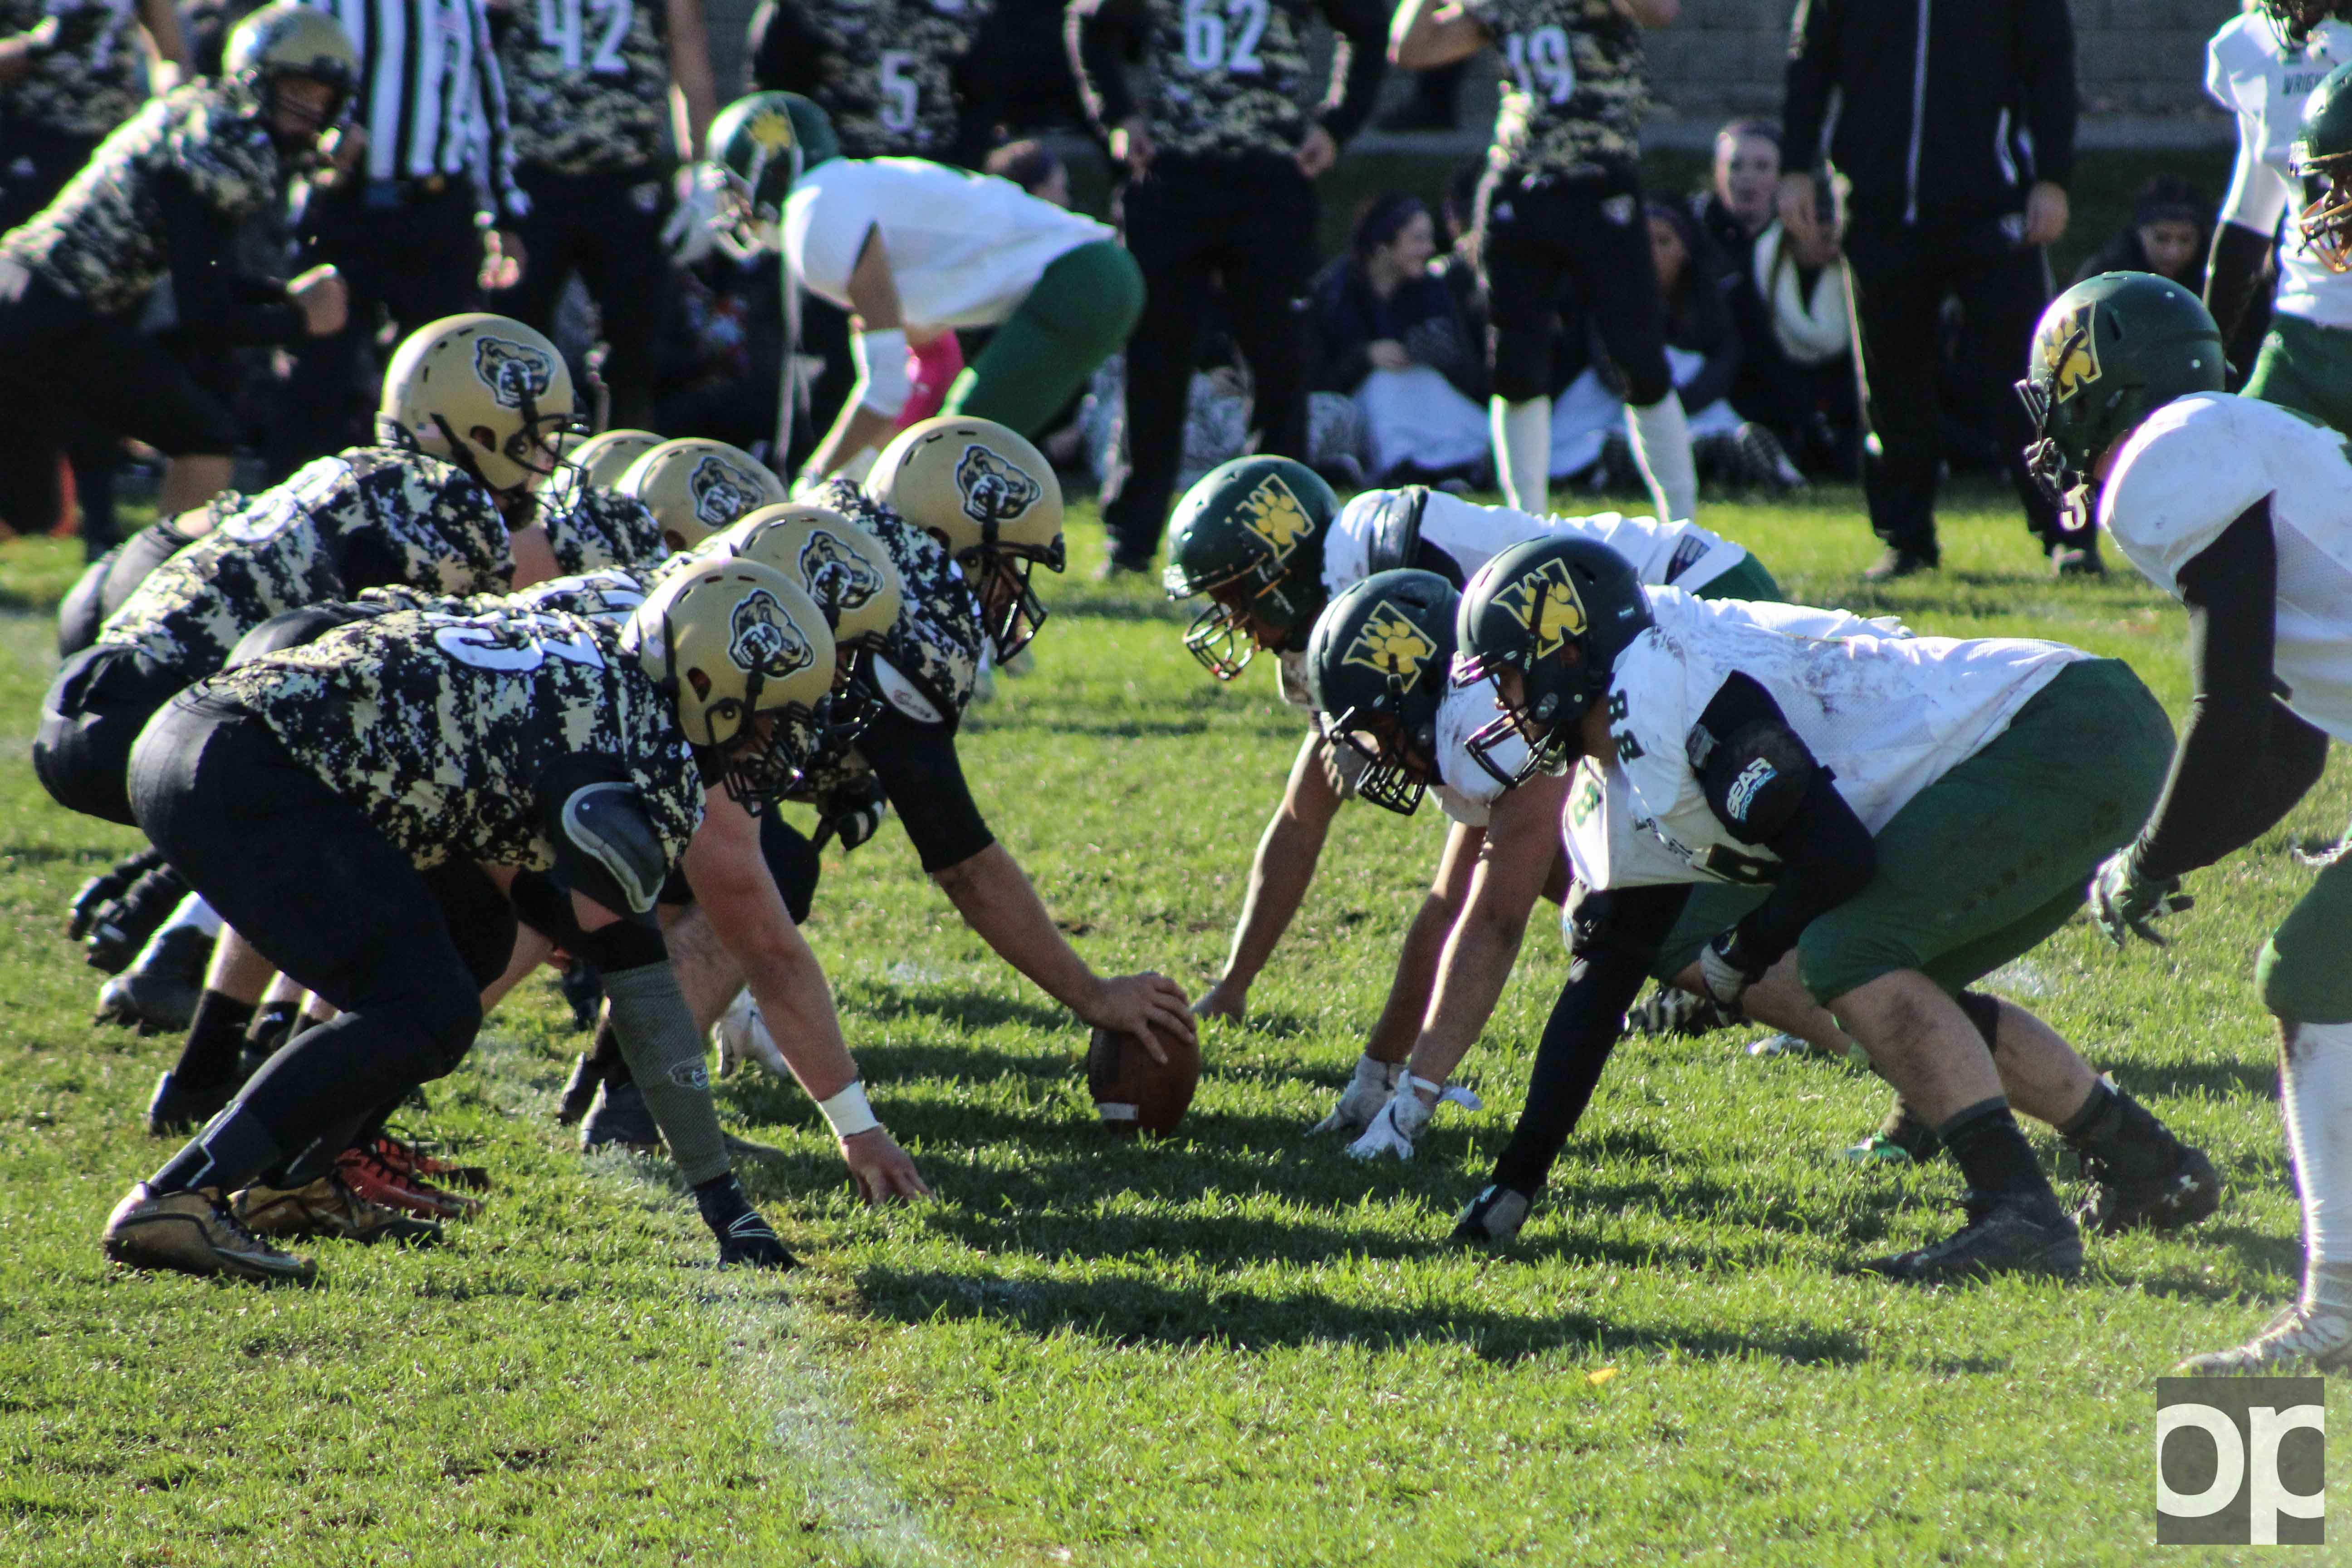 Oakland club football continues undefeated season beating Wright State at the last home game of the season.